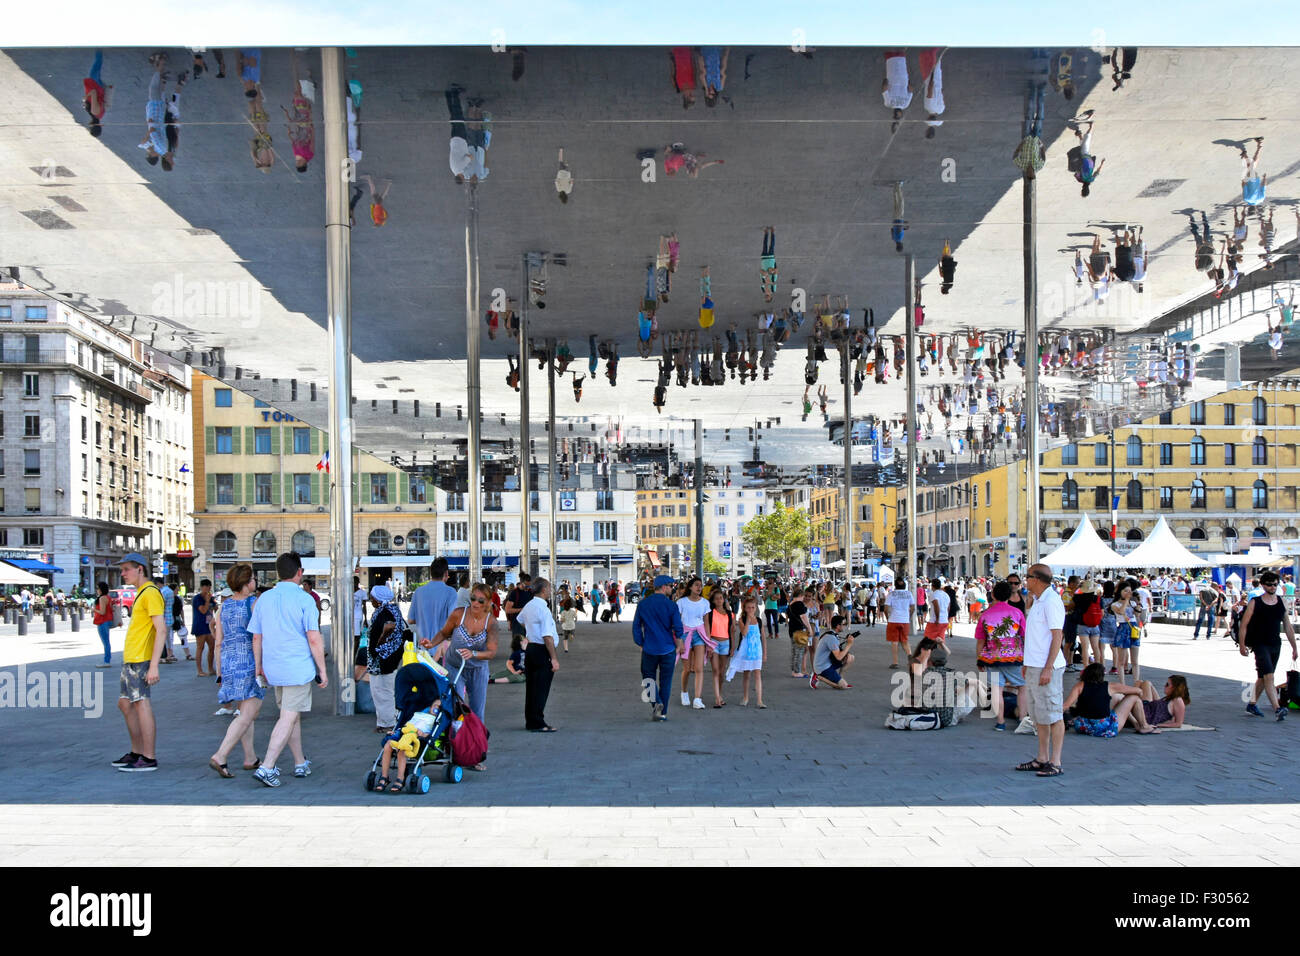 Marseille France Vieux Port Ombriere mirror people image reflections under Norman Fosters canopy in Old Port of - Stock Image